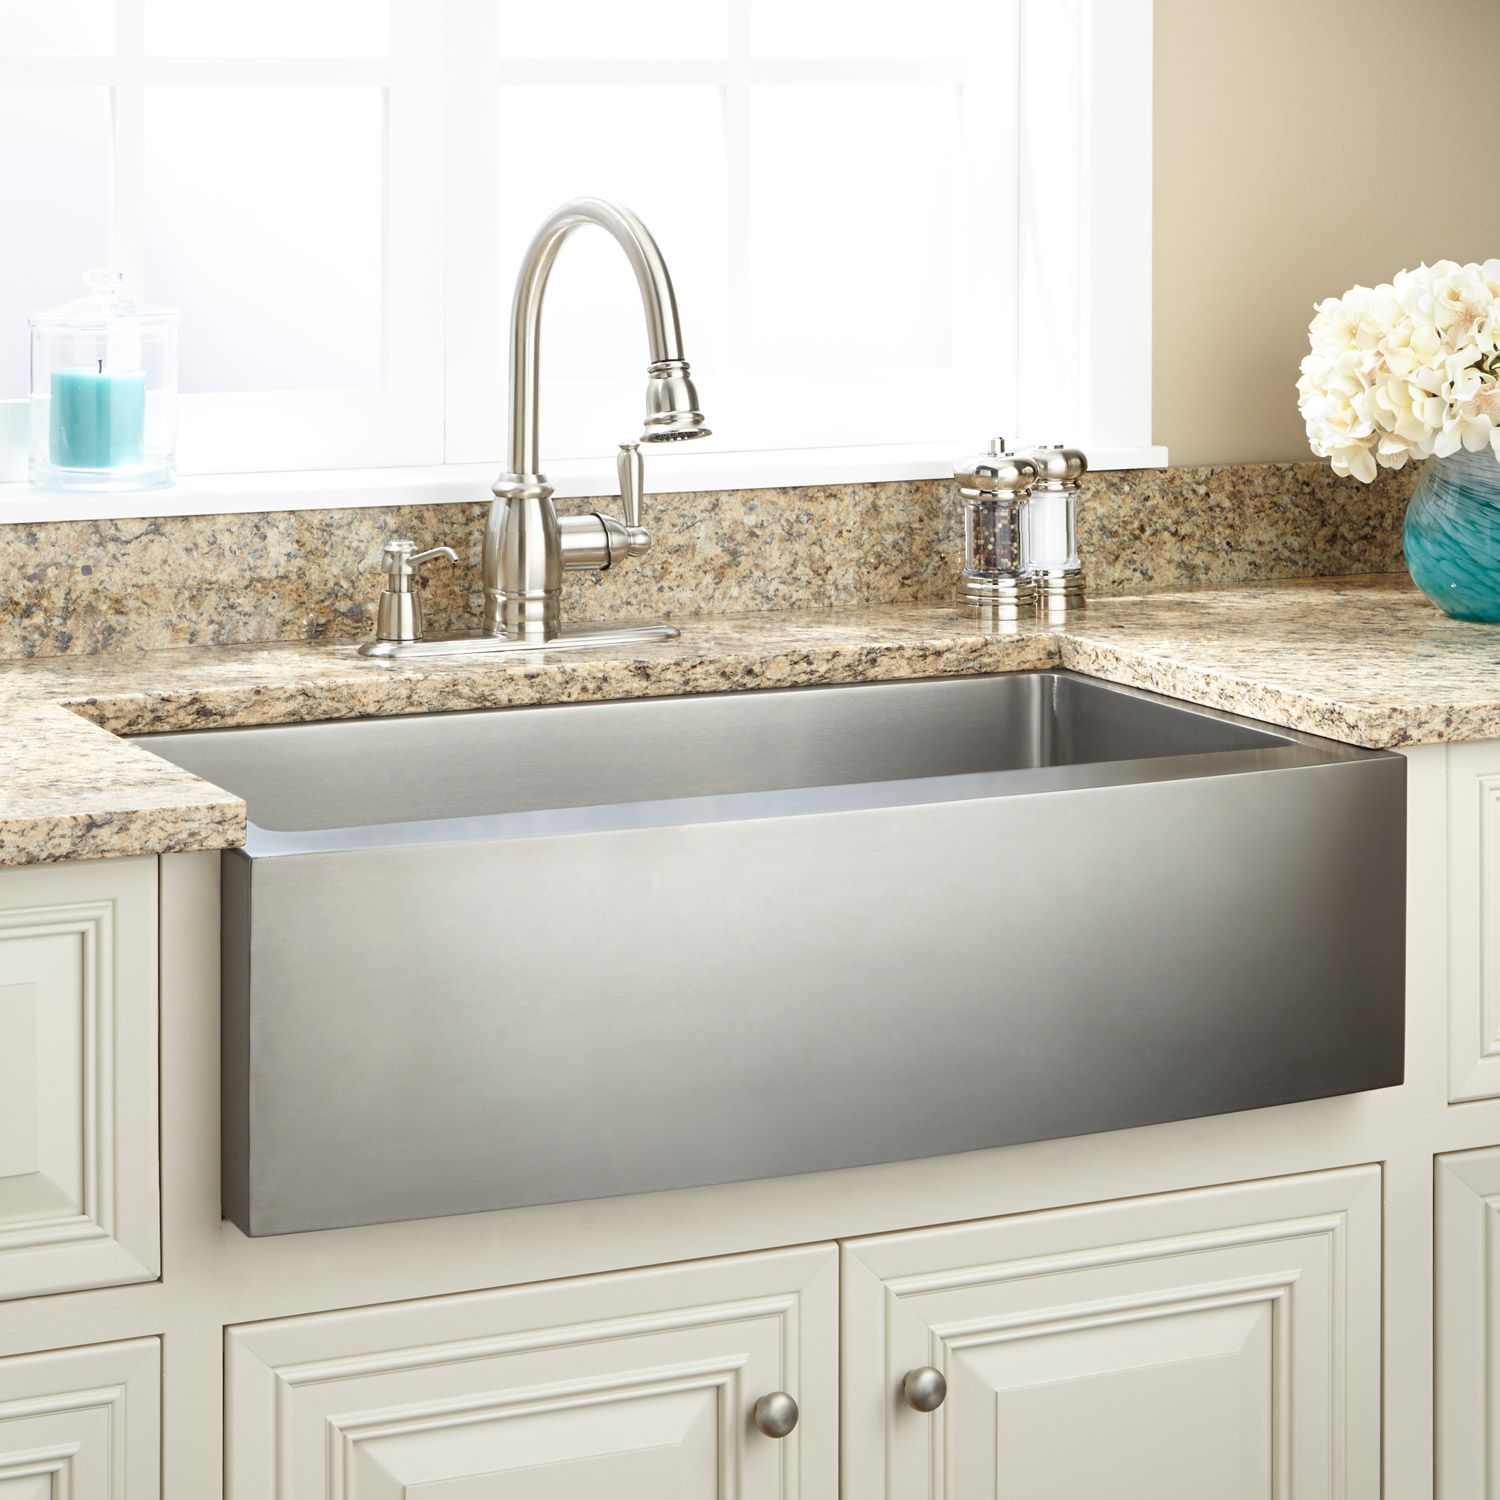 36 Fournier Stainless Steel Farmhouse Sink In Curved Apron